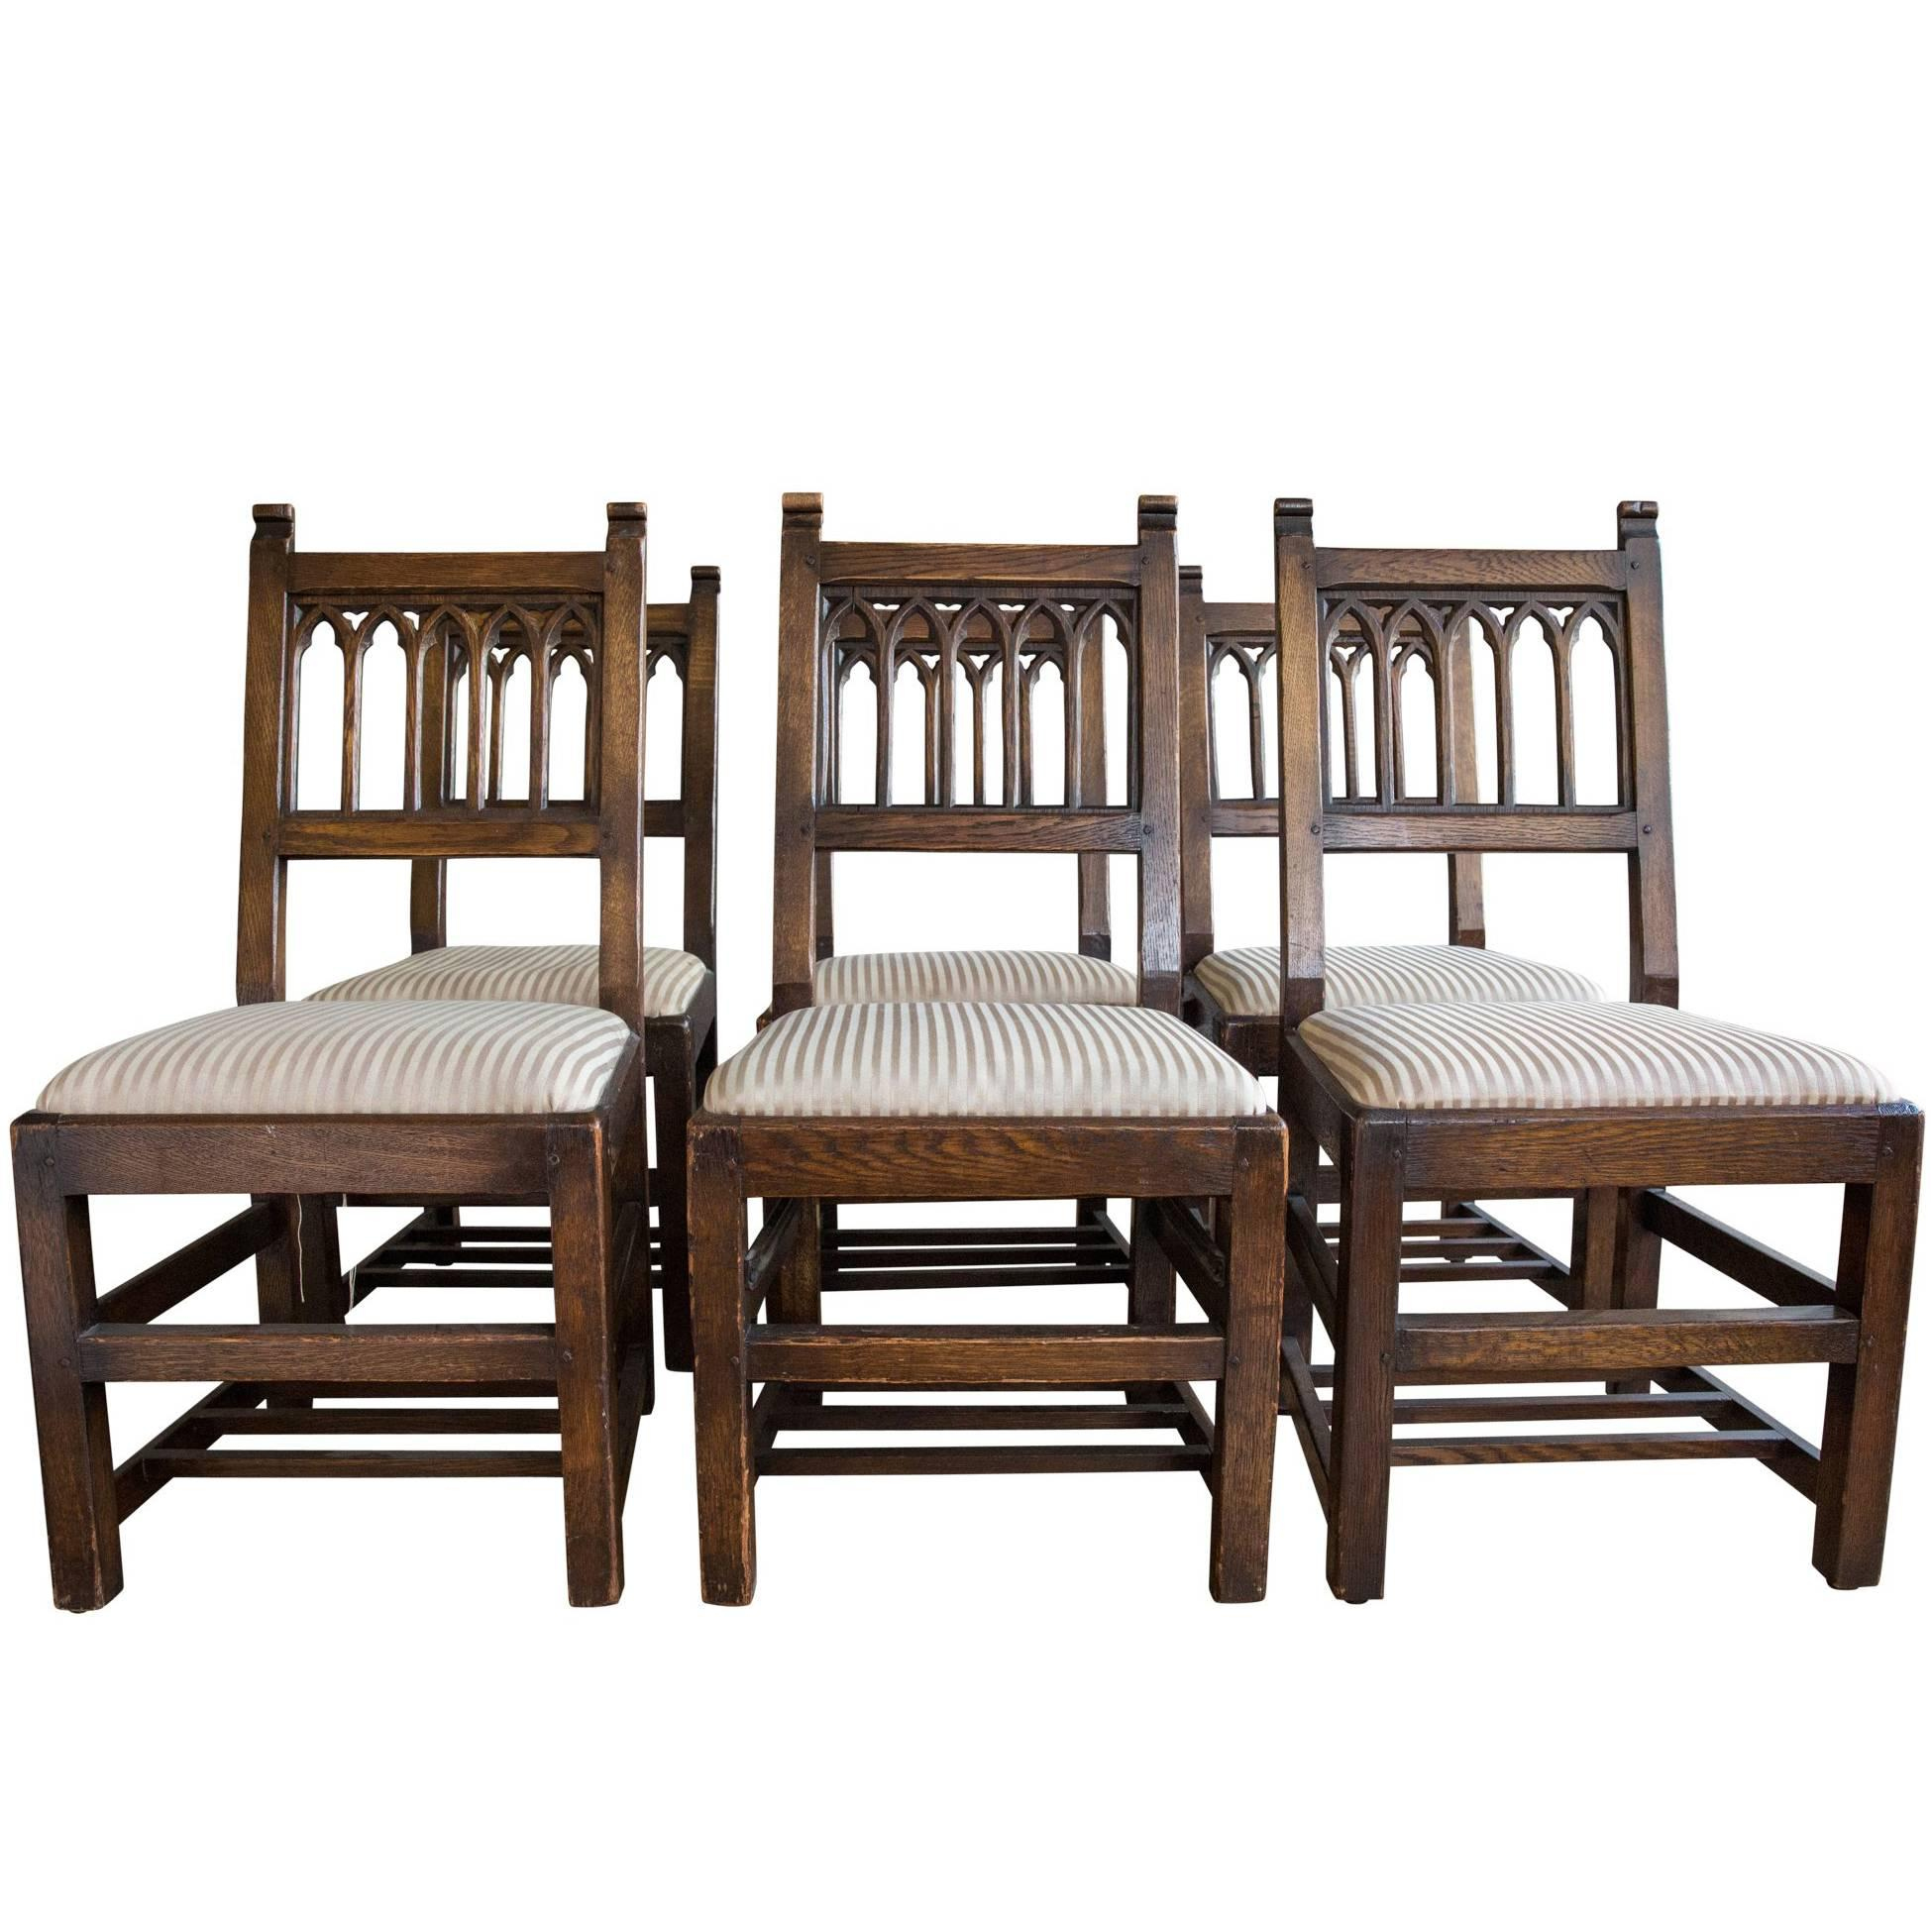 Set Of Six Oak Gothic Revival Pew Chairs From Riverside Church For Sale